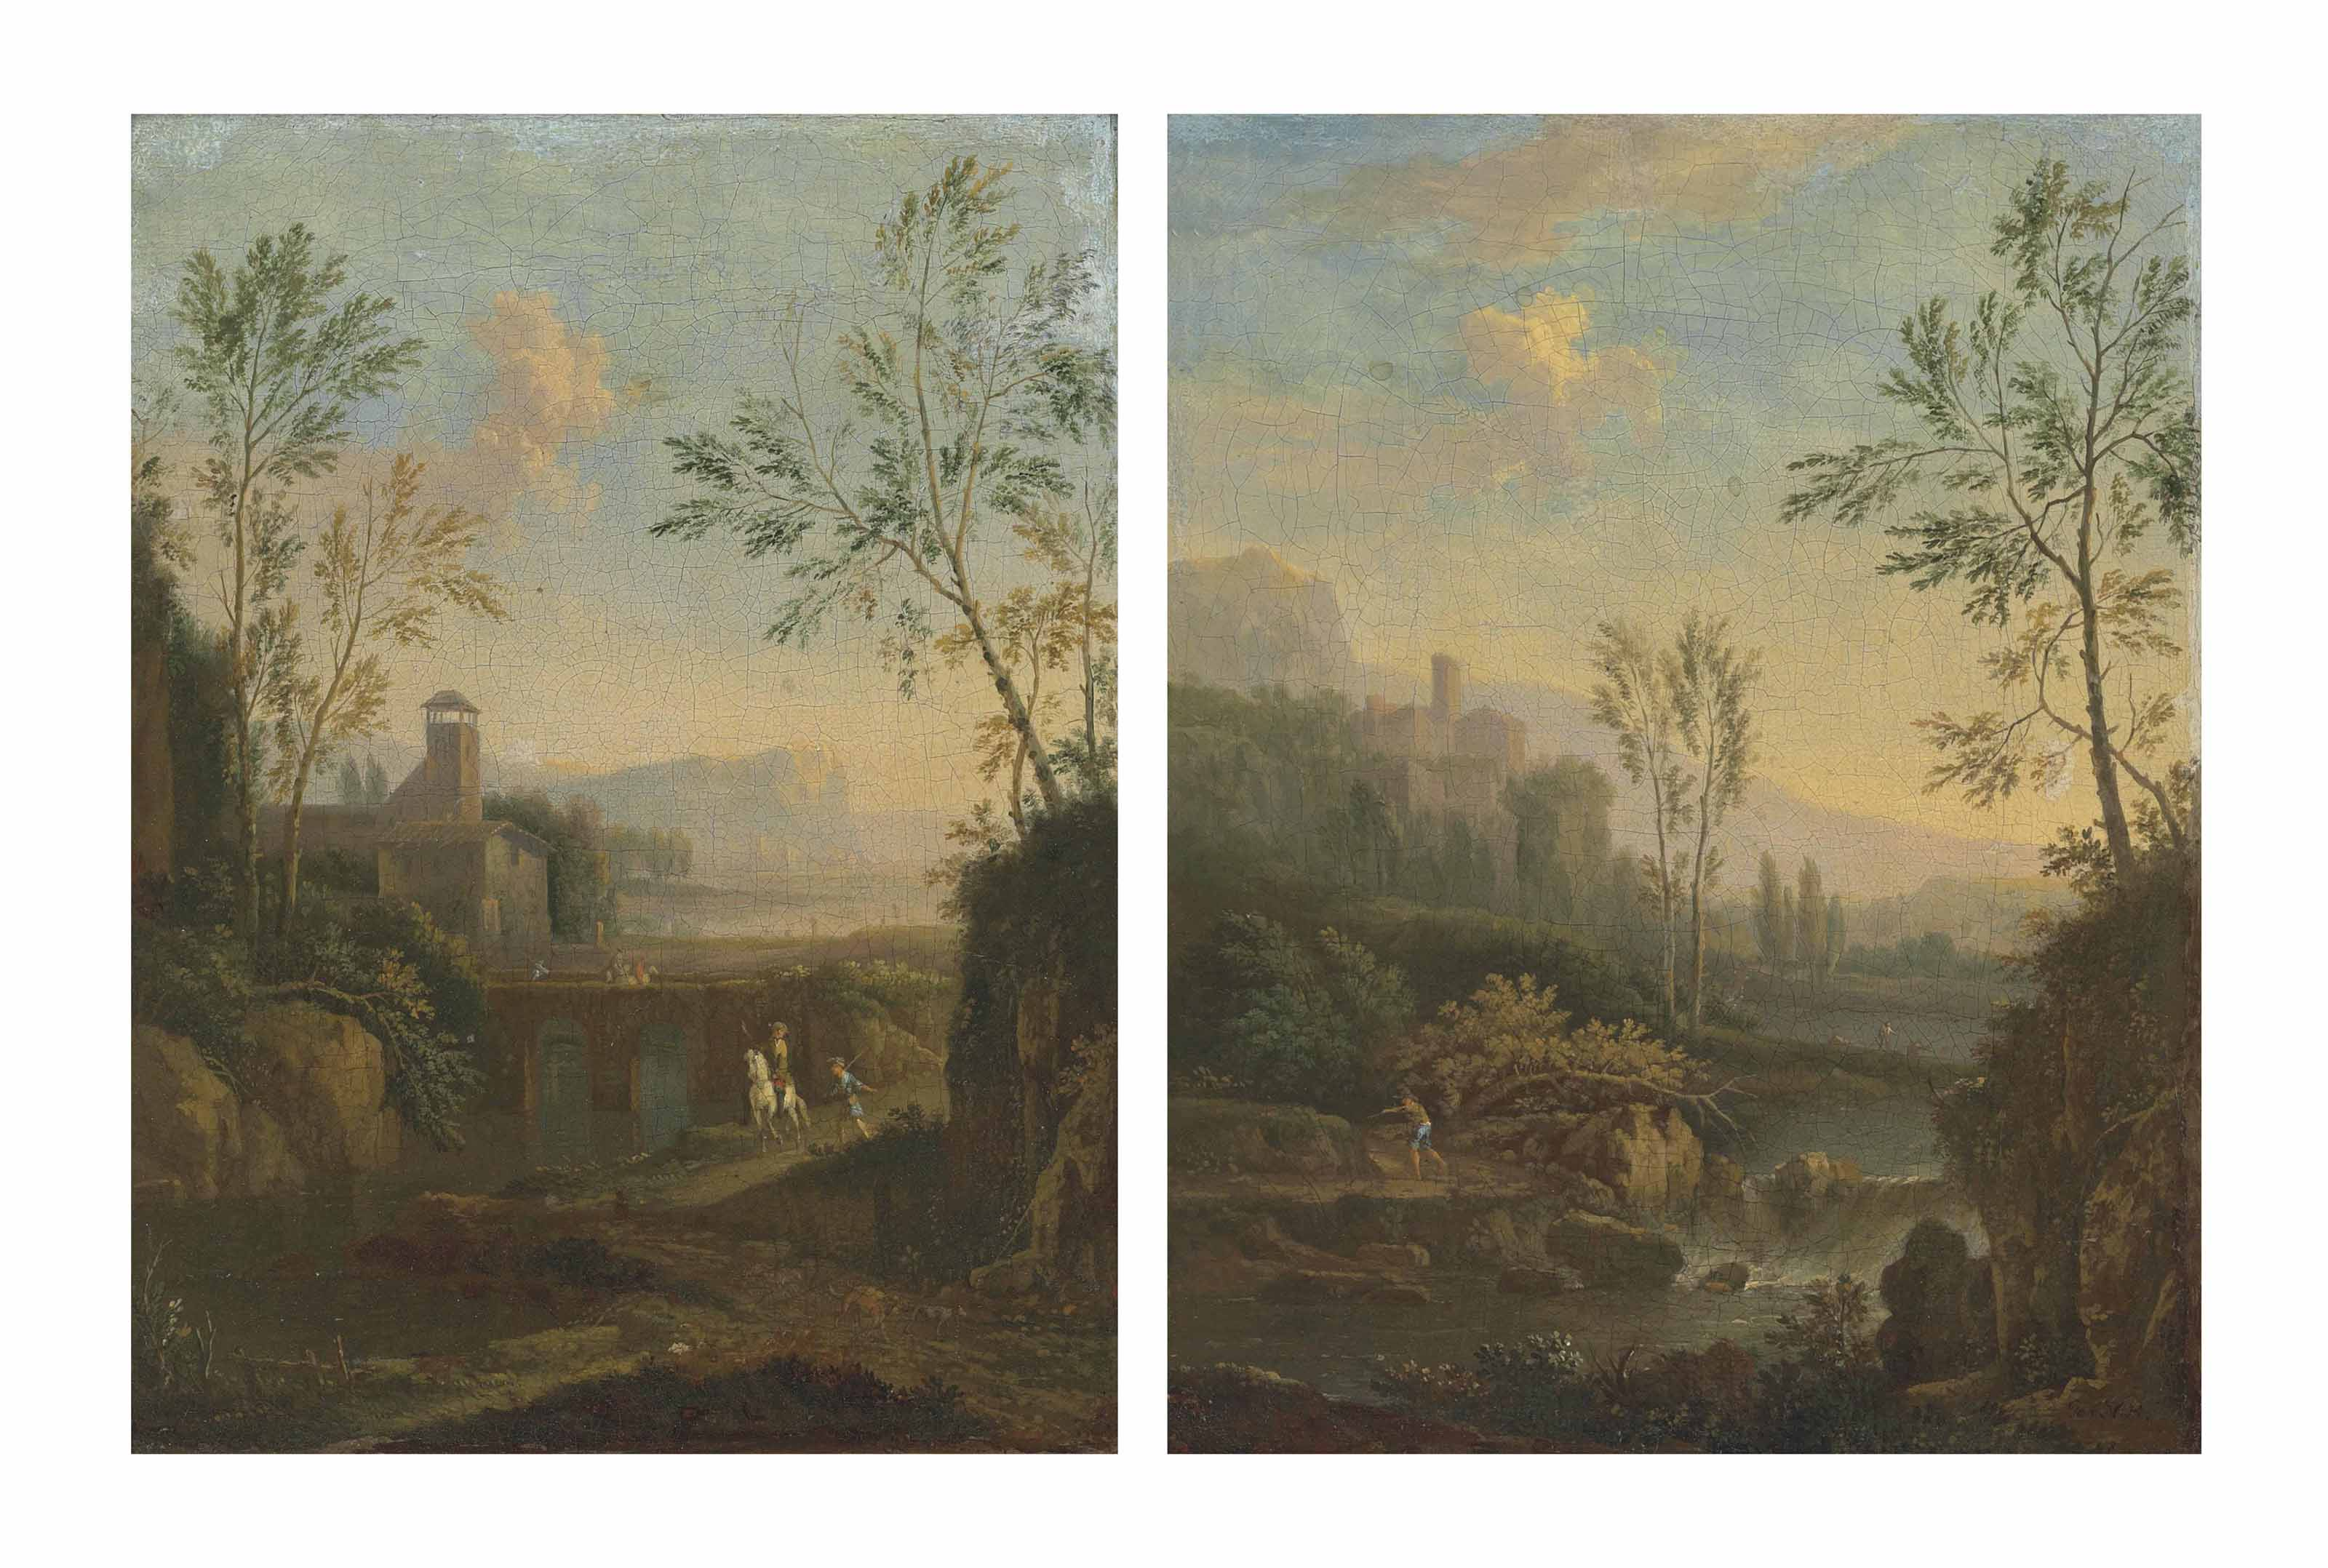 An Italianate river landscape with a waterfall and a figure on a path, a villa and mountains beyond; and An Italianate river landscape with travellers crossing a bridge and a figure on horseback, a villa beyond